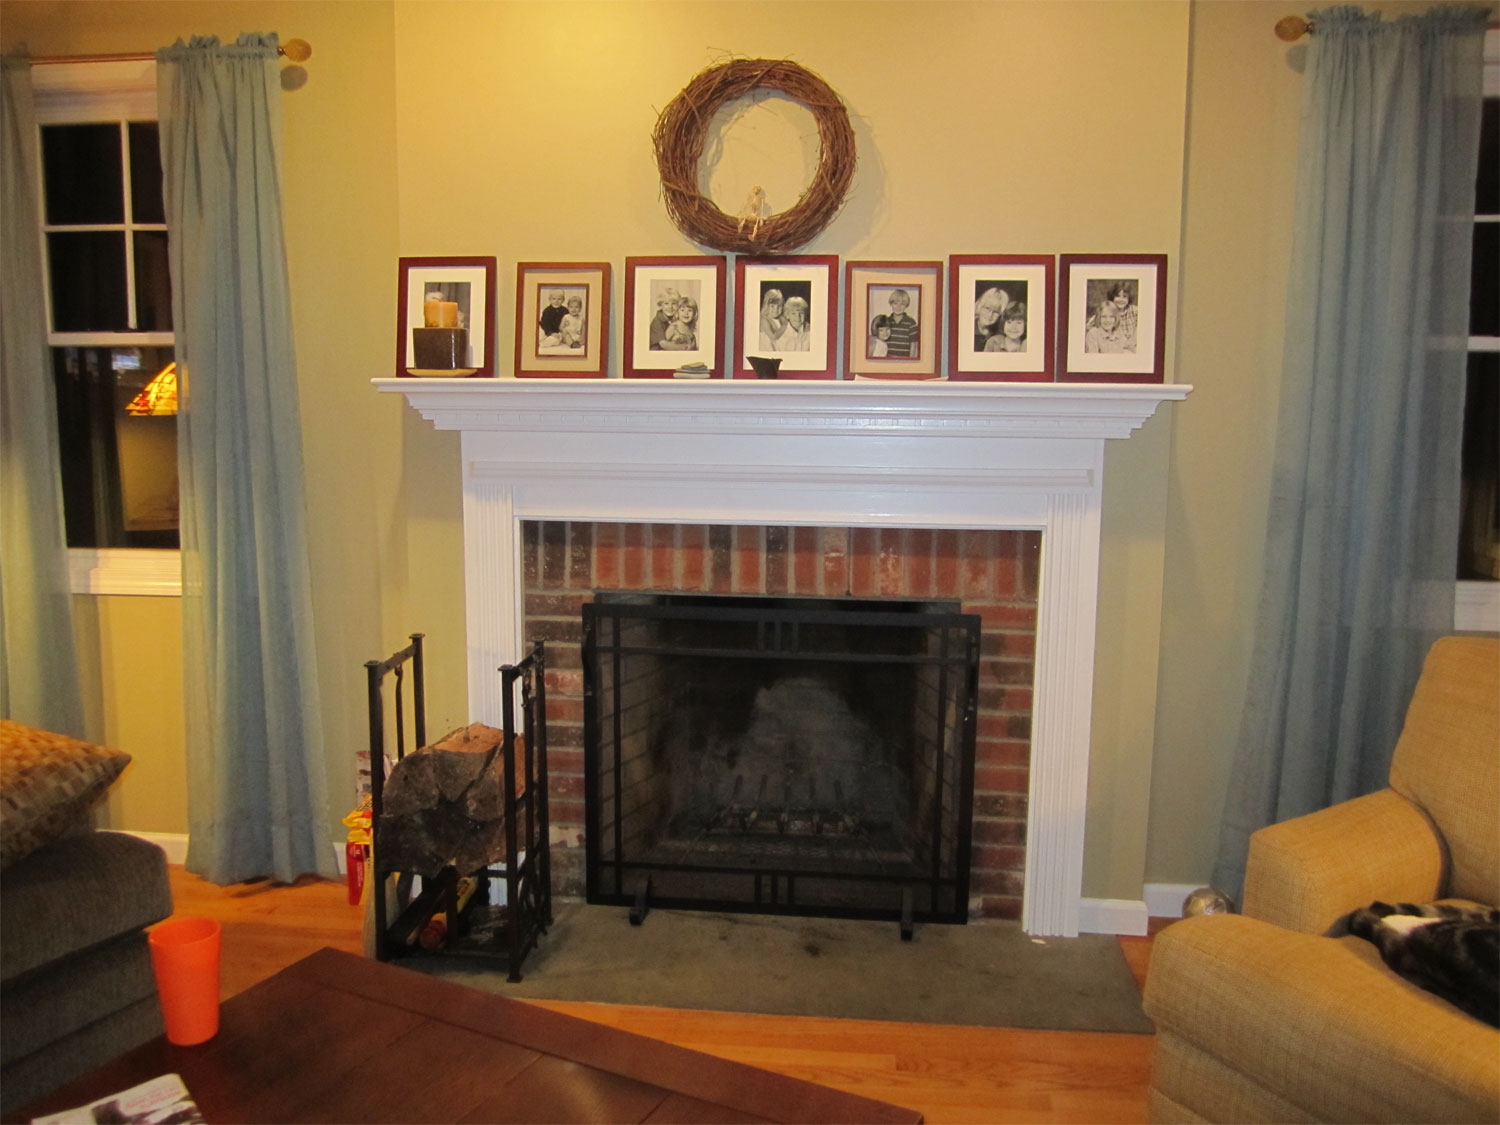 Jewelry Knitting Life Arts And Crafts Mantle Fireplace Surround